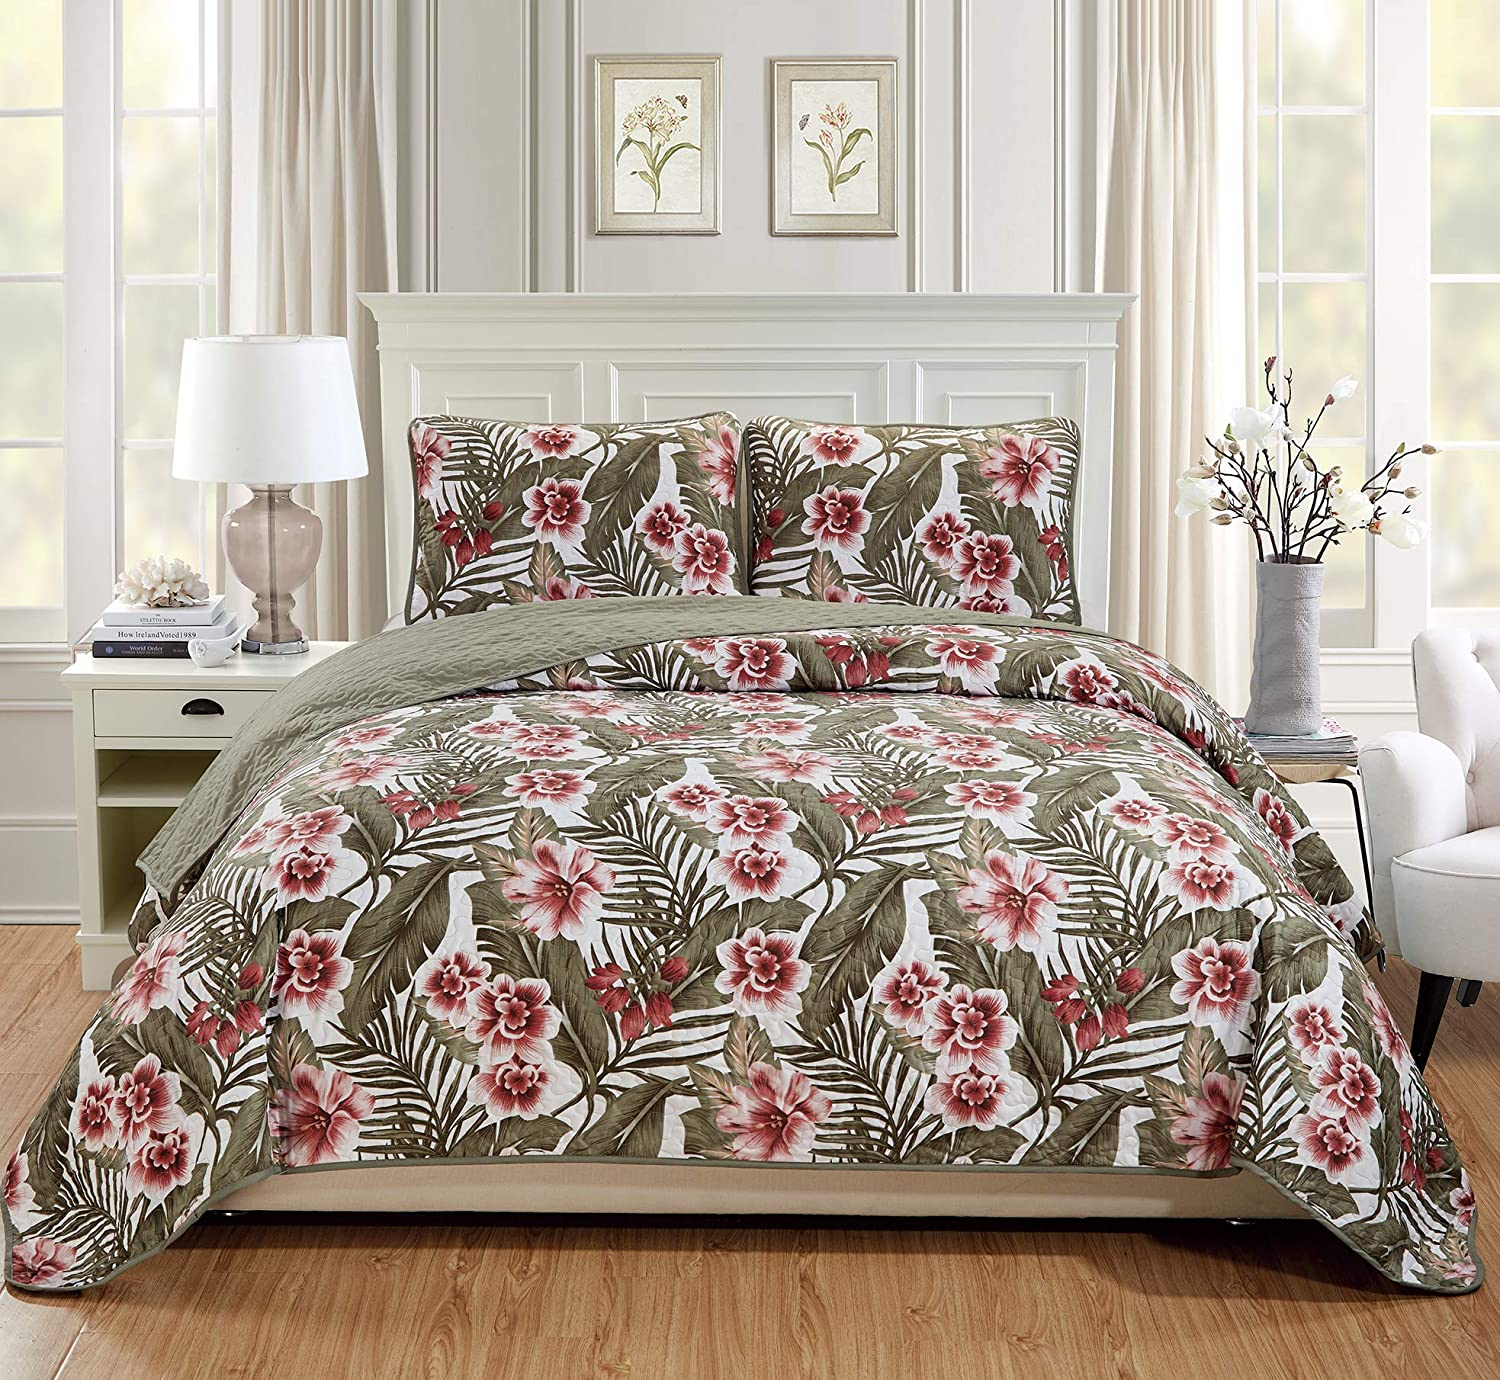 Fancy Linen 3pc King/California King Bedspread Quilt Set Over Size Bed Cover with Flowers Leaves Sage Green Burgundy White Taupe New